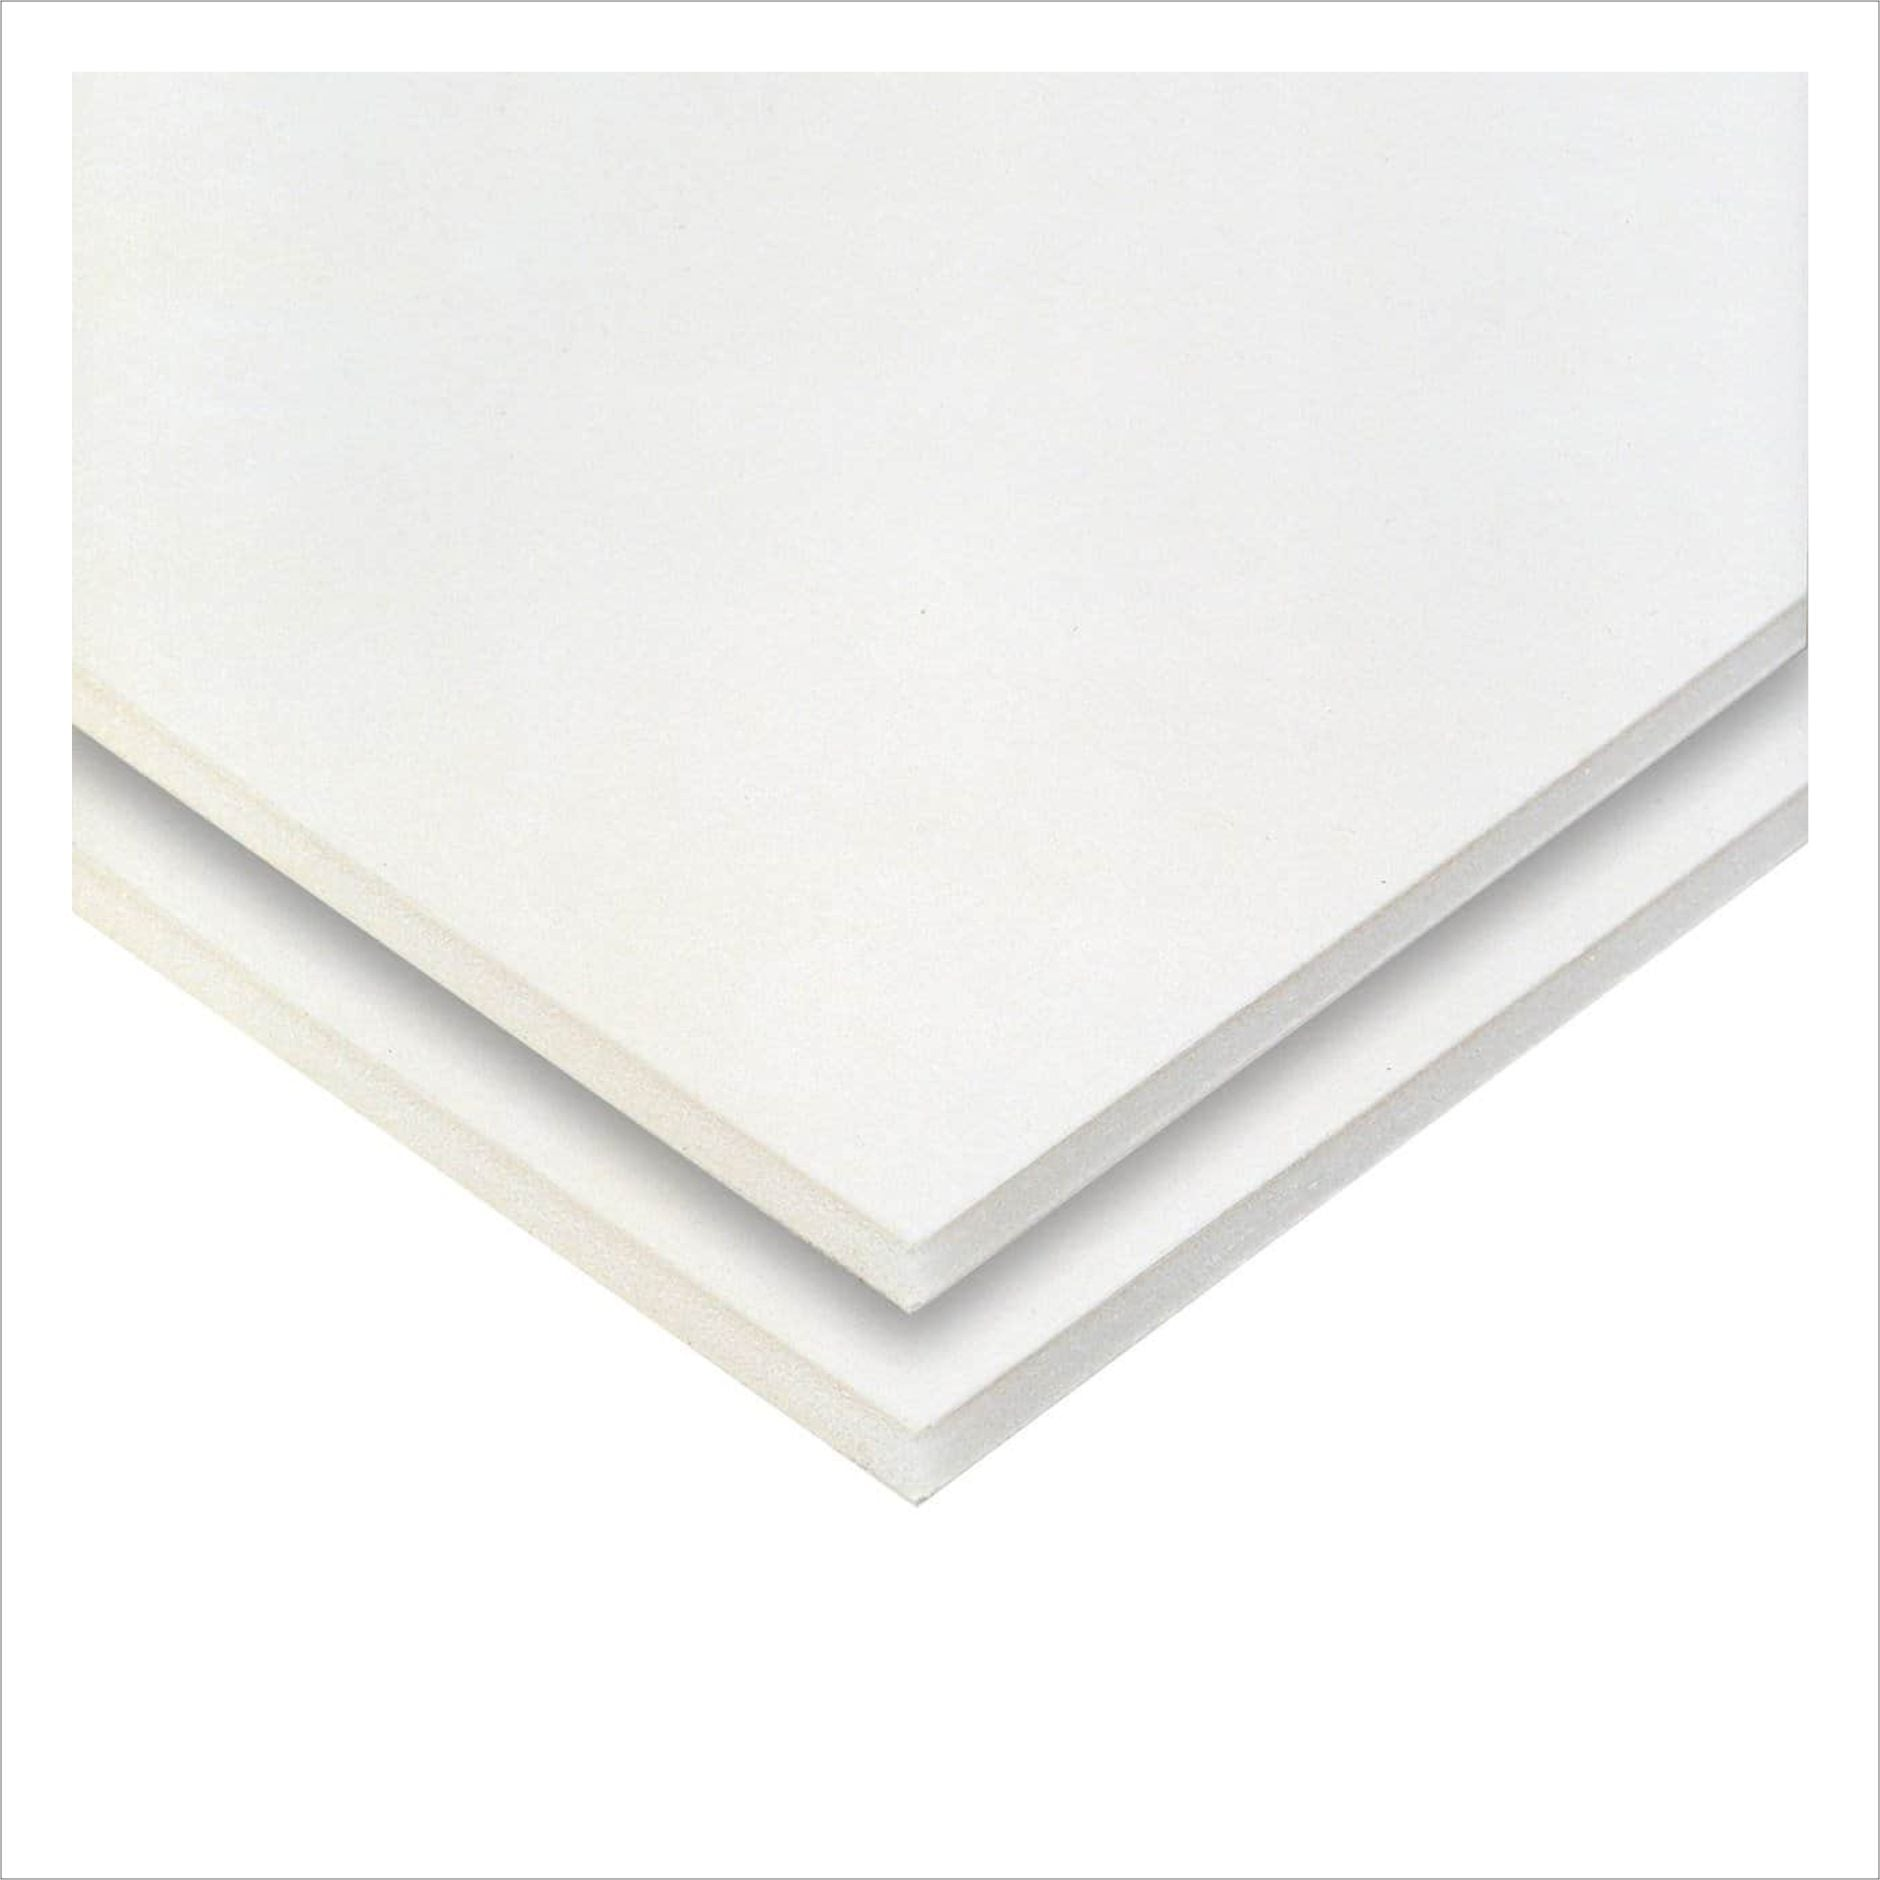 40 x 30 inch Foamcore sheet (5mm) - Picture Framer Perth